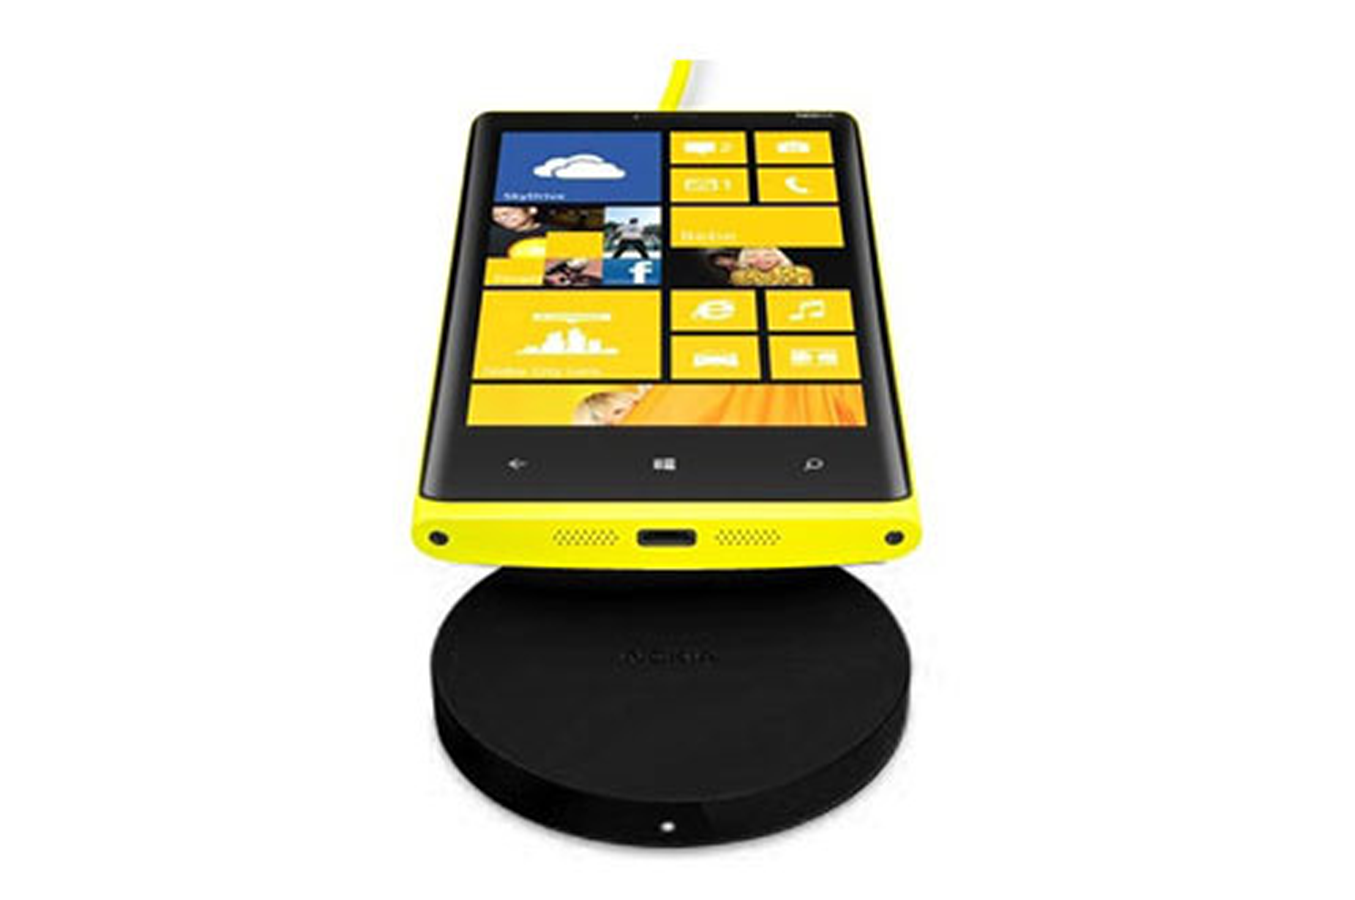 chargeur portable nokia socle de chargement sans fil noir dt601 pour nokia lumia dt601noir. Black Bedroom Furniture Sets. Home Design Ideas